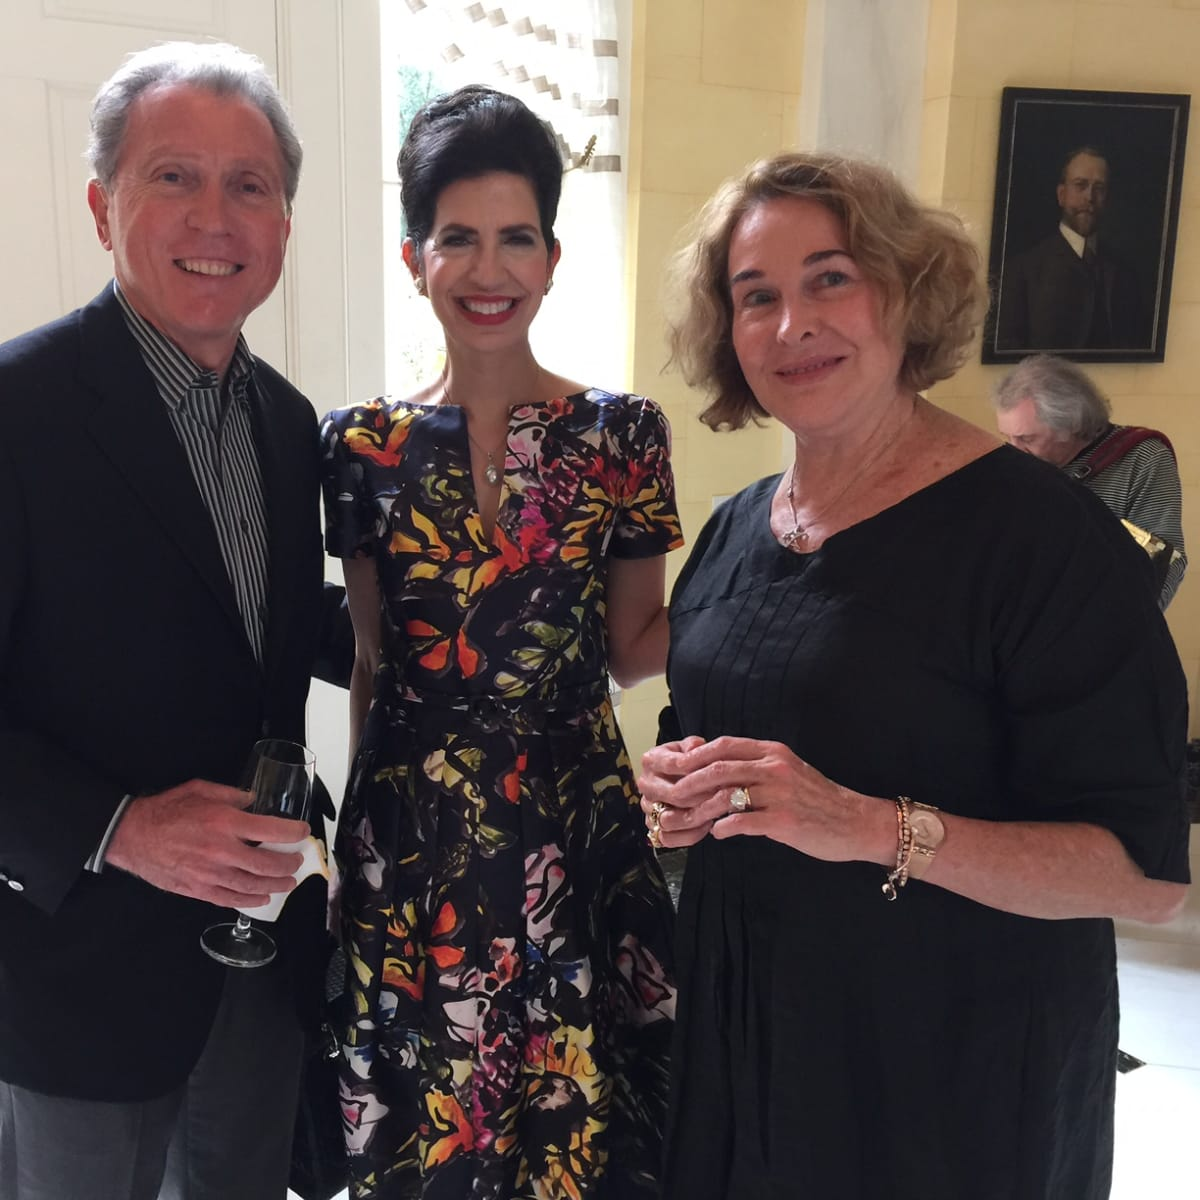 News, Shelby, Barbara Hines lunch on Venice, Oct. 2015, Martin Fein, Kelli Cohen Fein, Barbara Hines